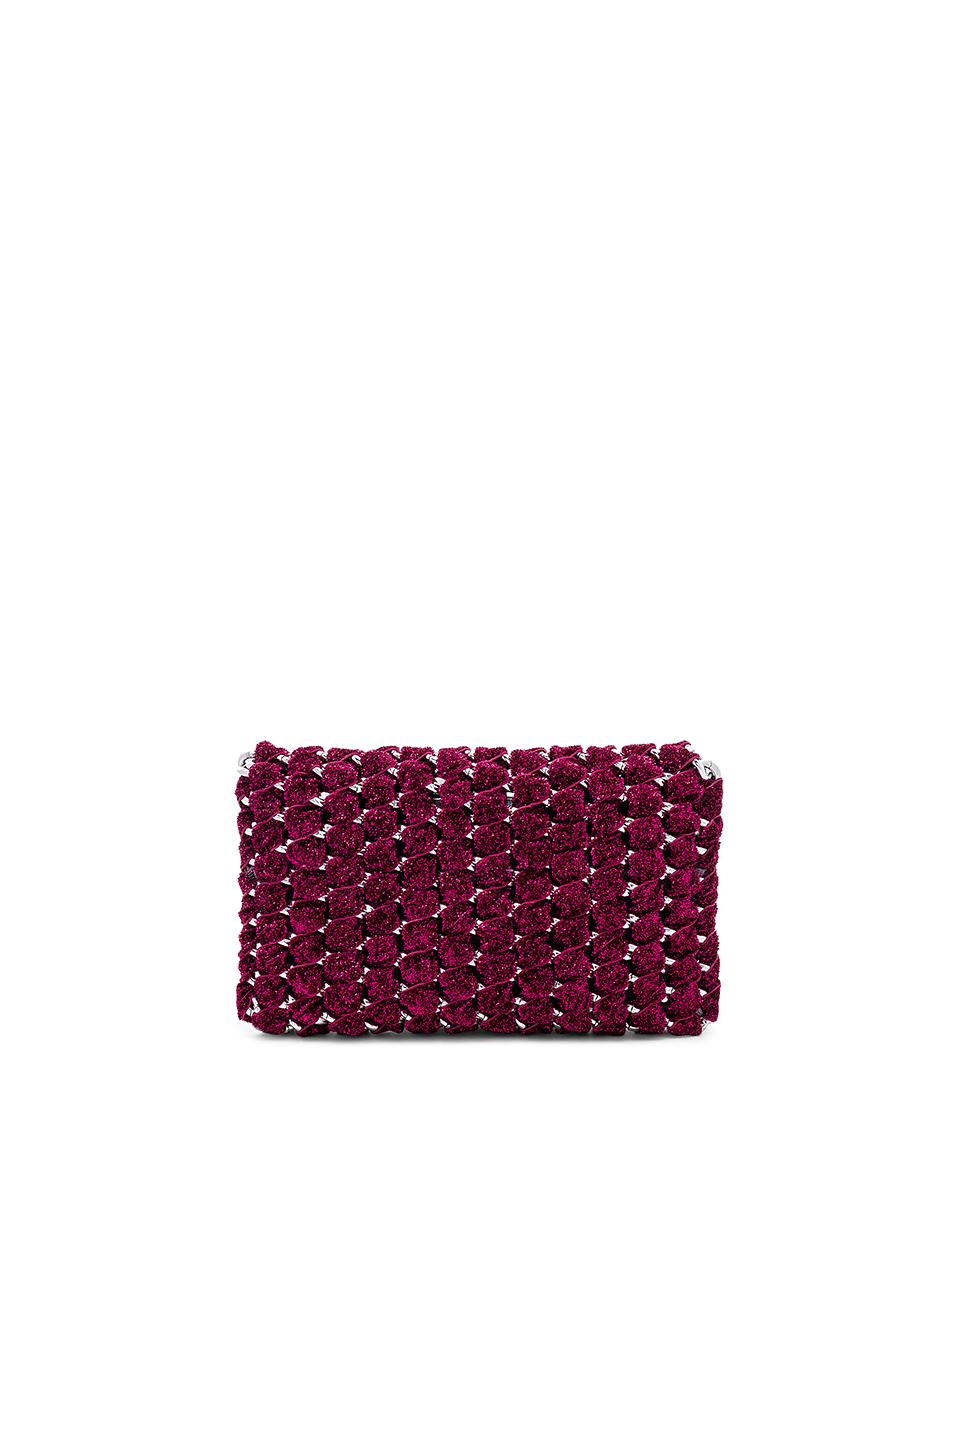 90fa05b238 TAMBONITA - Purple Eve Shimmer Clutch With Silver Chain - Lyst. View  fullscreen